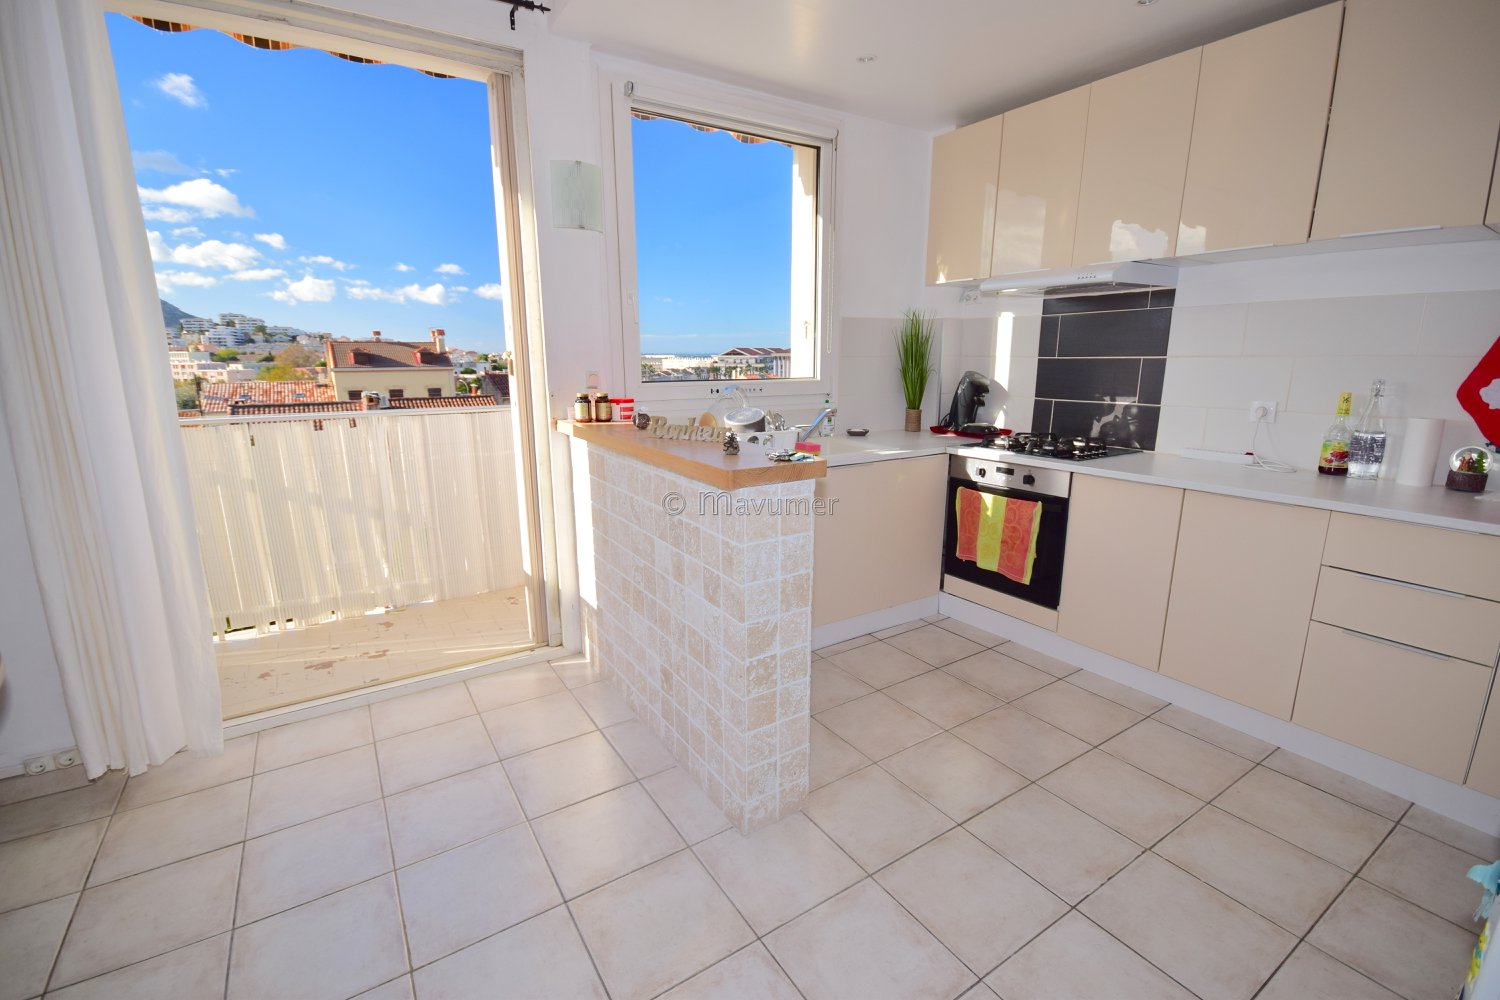 APPARTEMENT T3 DENIER ETAGE VUE MER BORELY13008 MARSEILLE